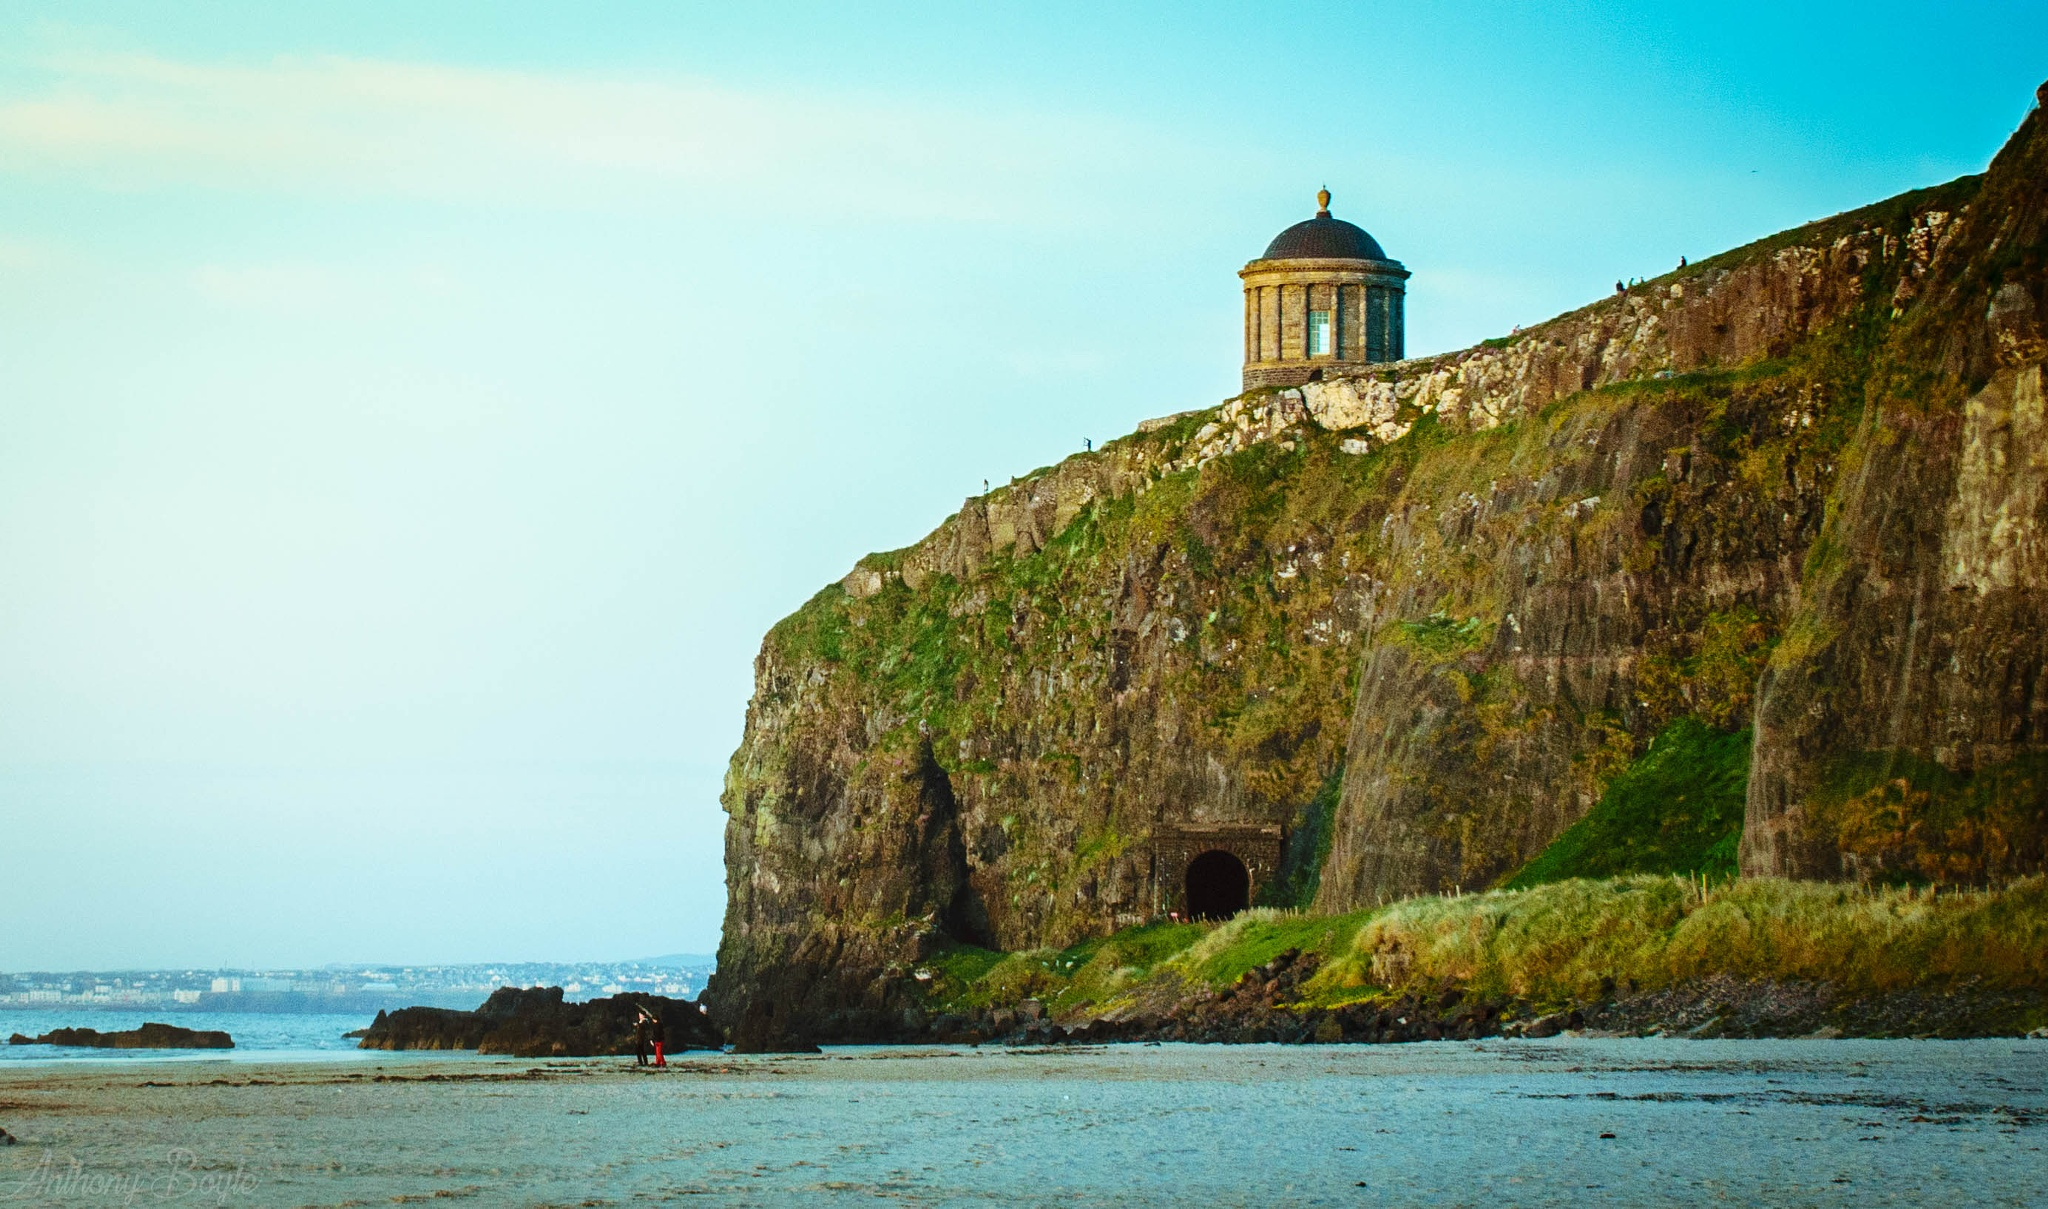 Mussenden Temple by Anthony Boyle